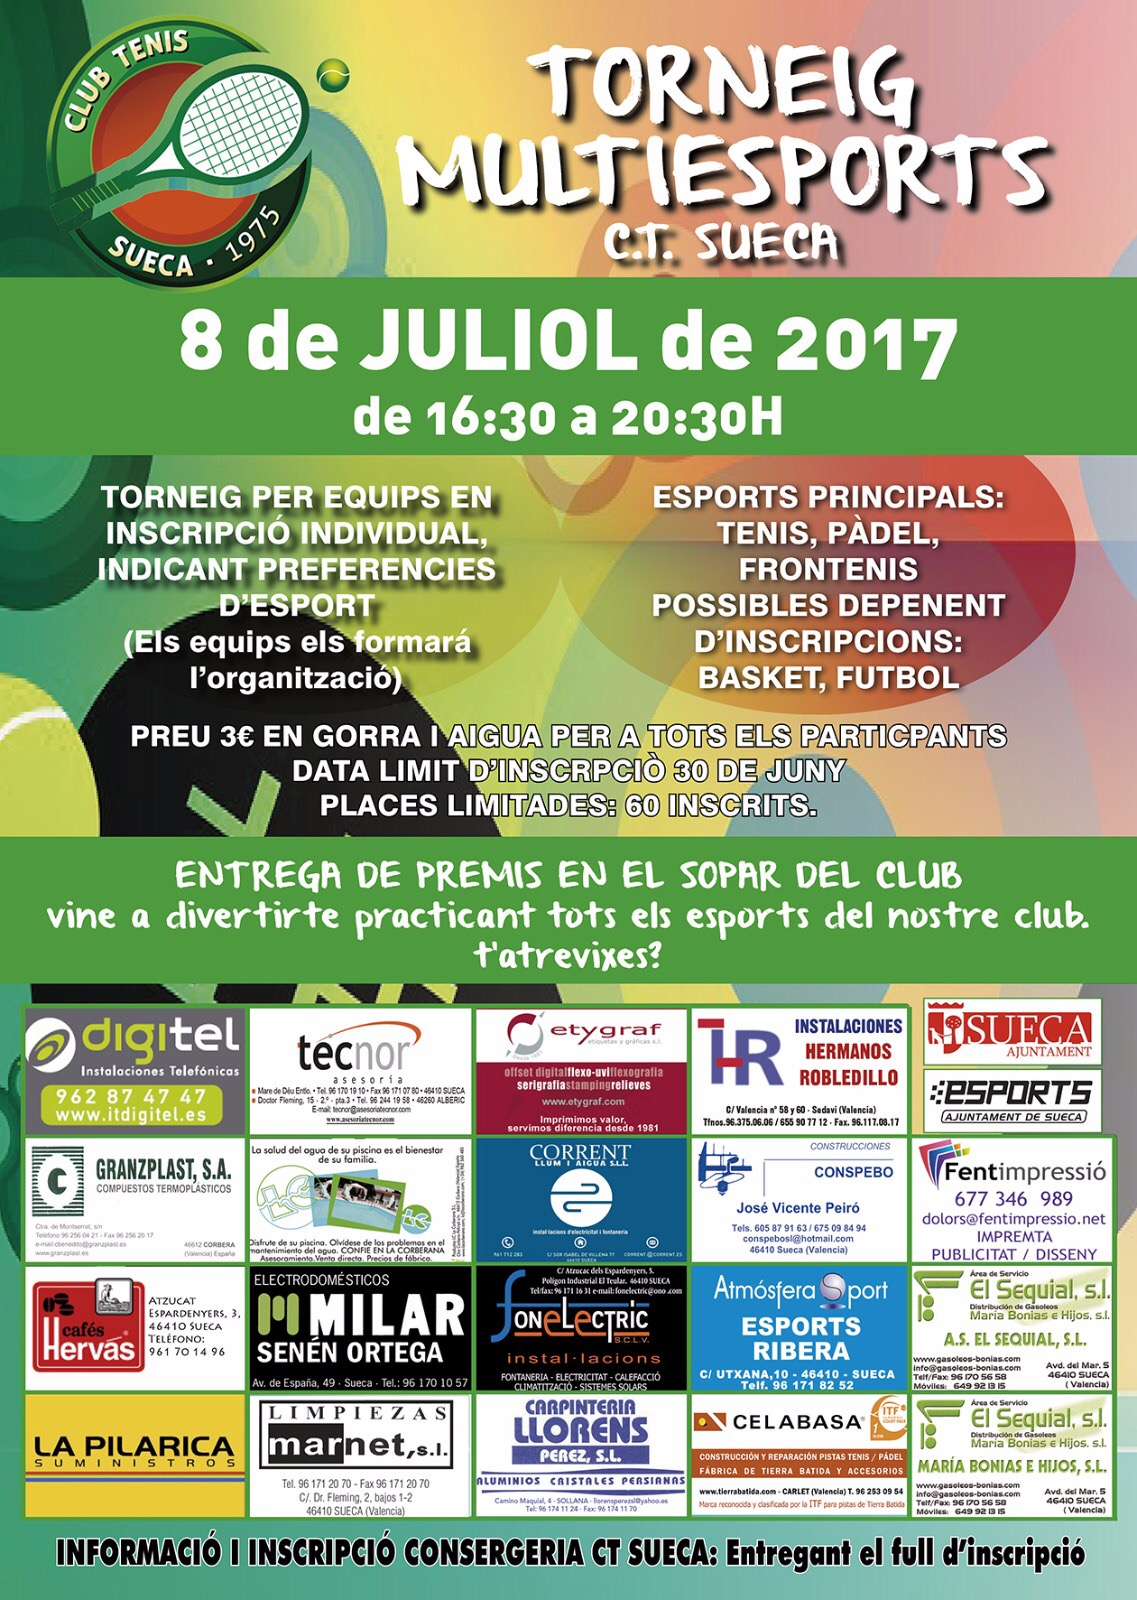 TORNEIG MULTIESPORT. CLUB TENIS SUECA